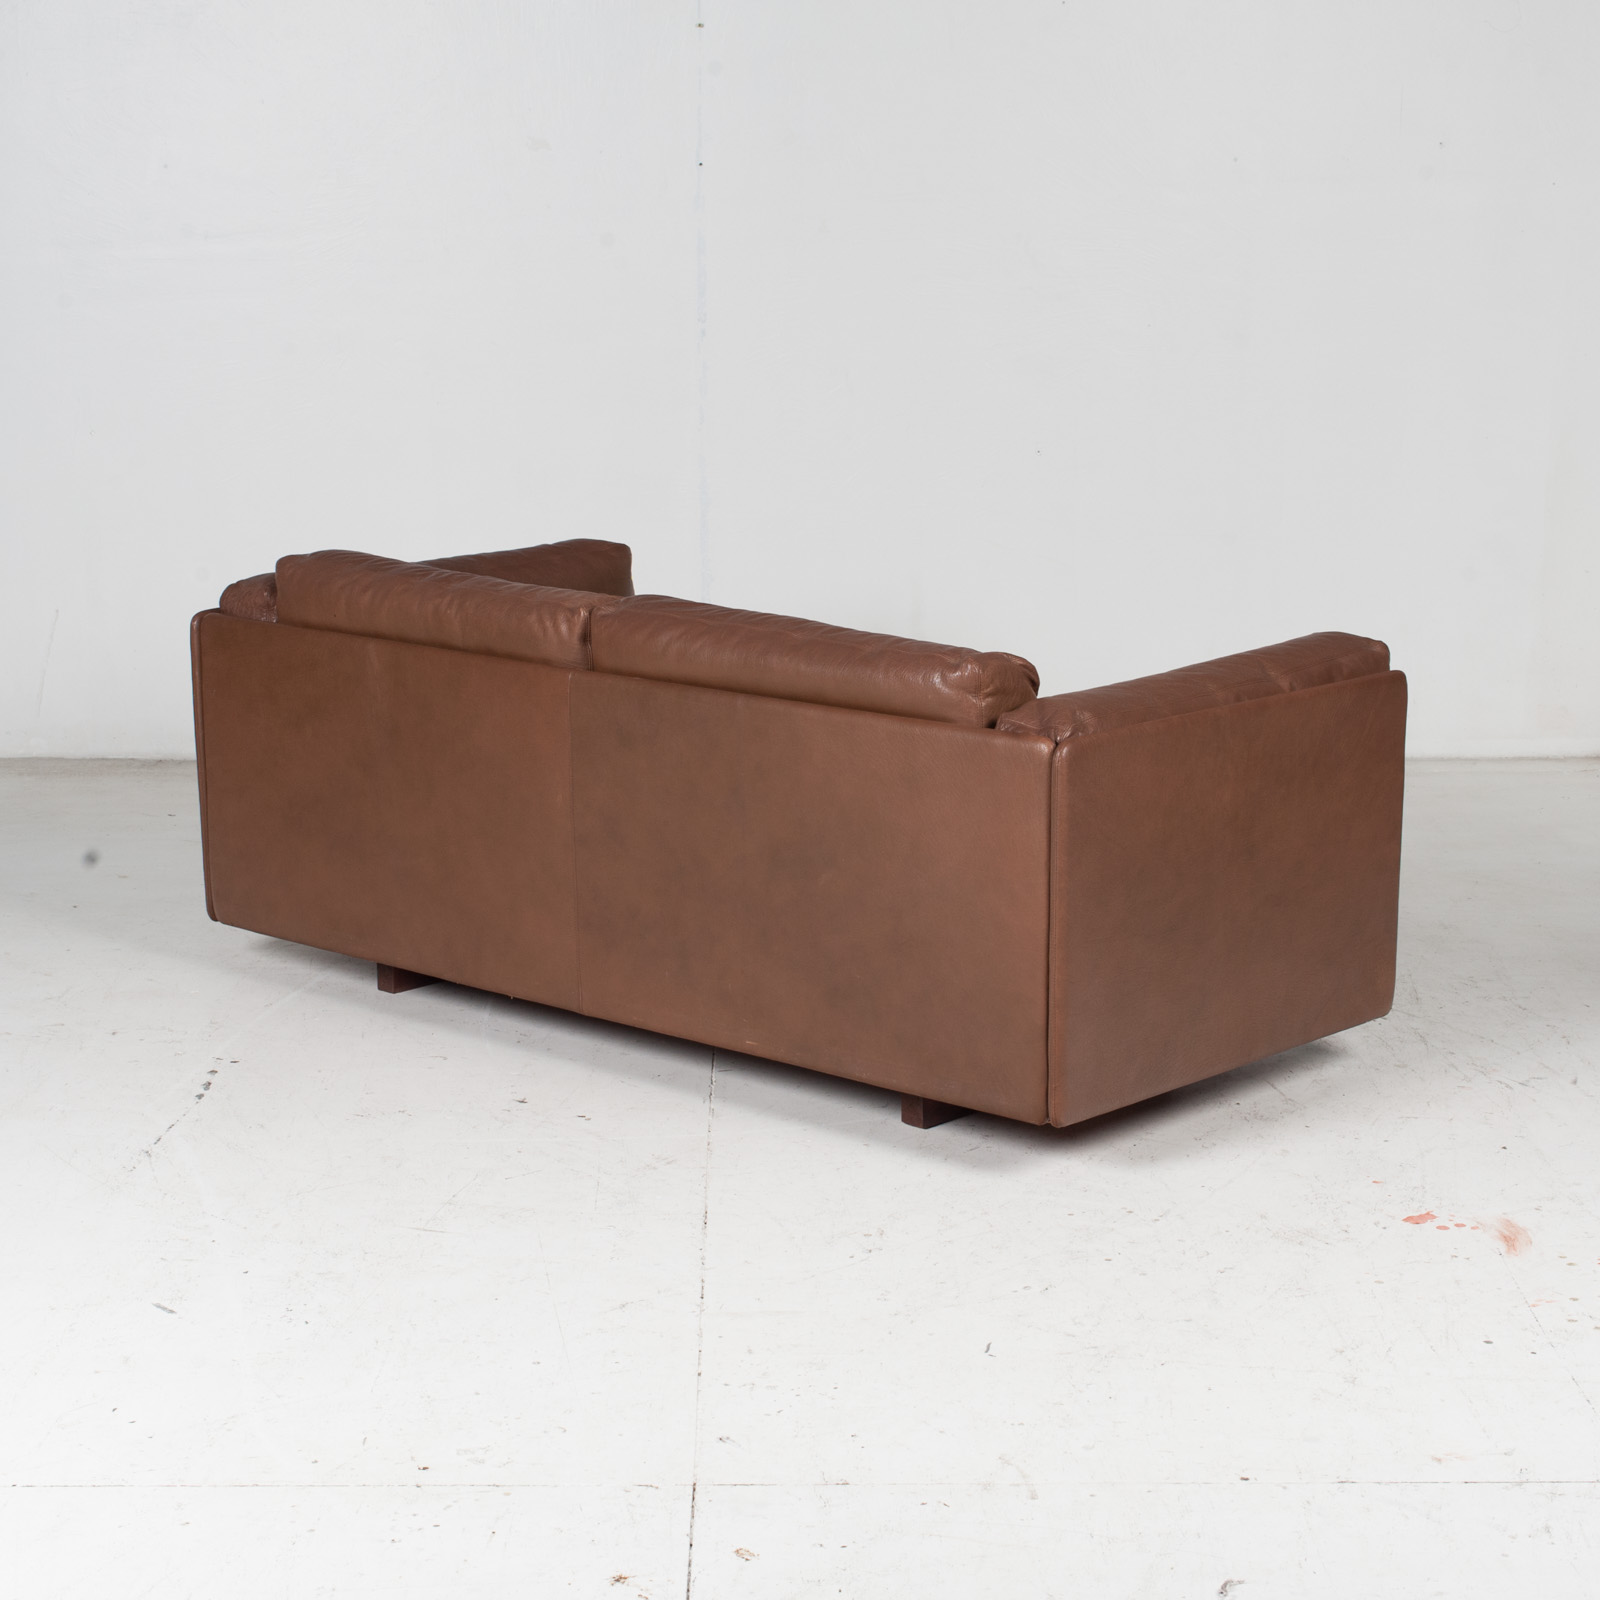 2 Seater Sofa In Brown Leather, 1960s, Switzerland 10